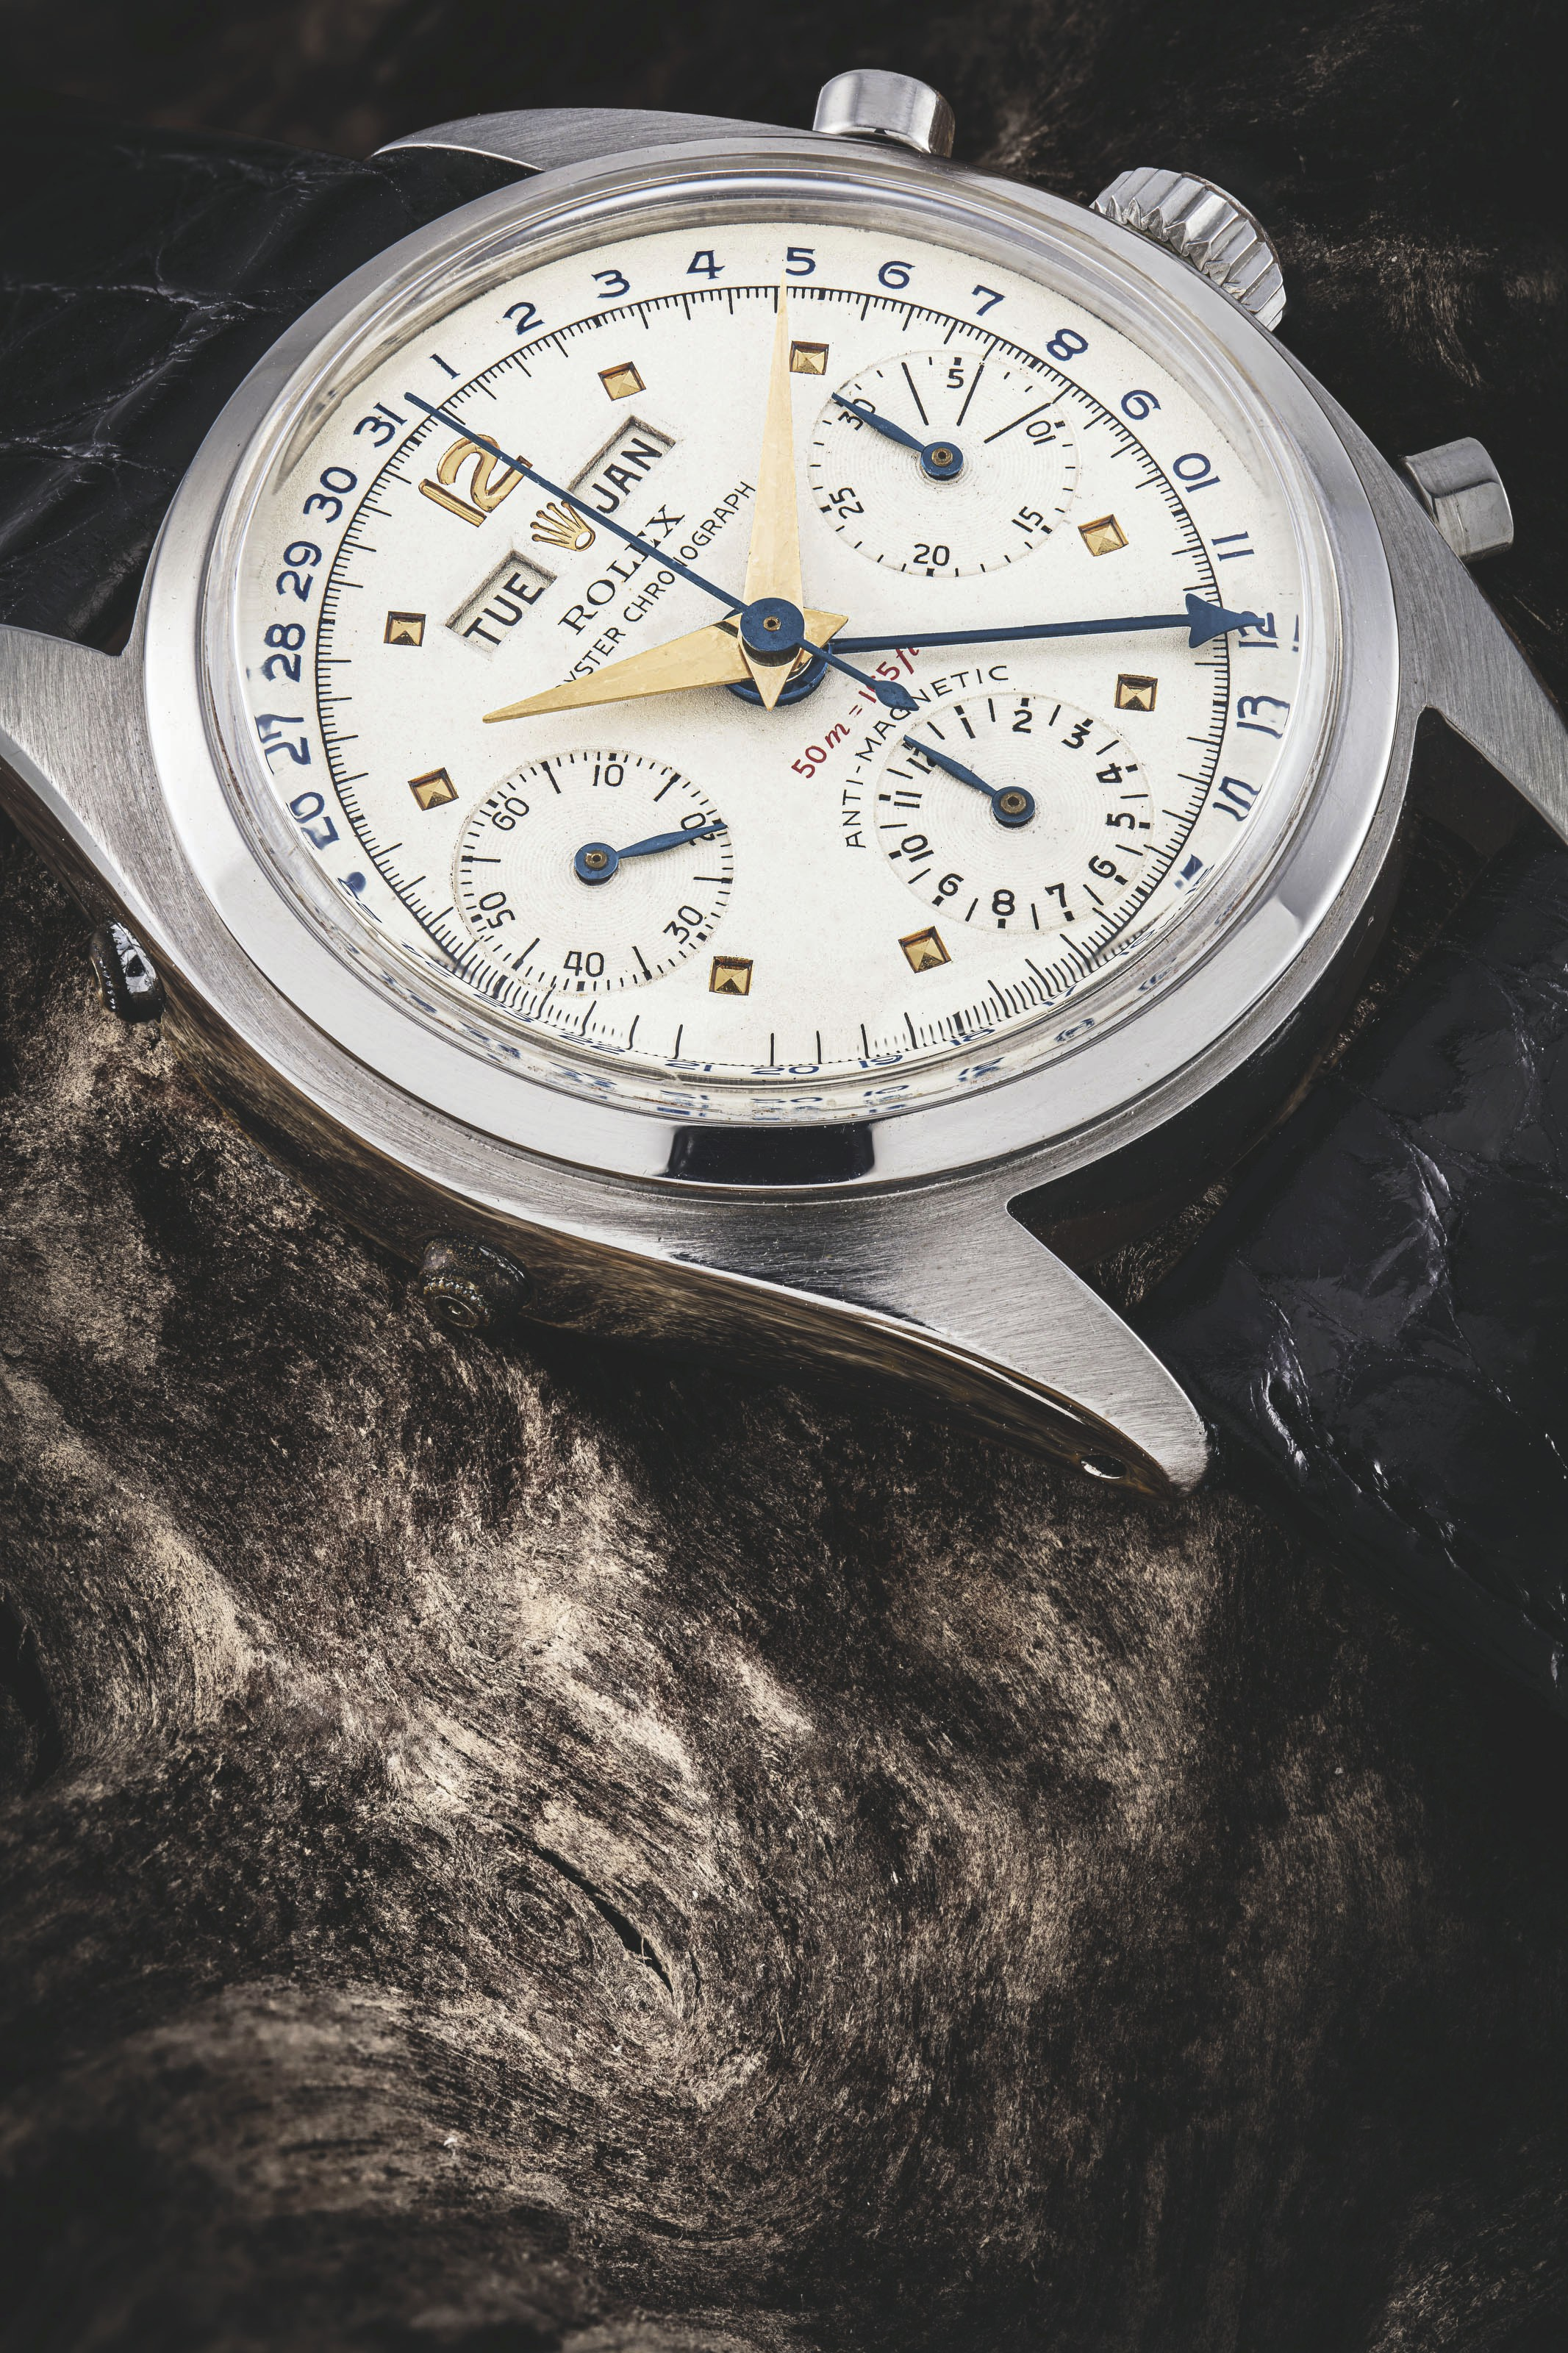 """Rolex. An extremely rare stainless steel chronograph triple calendar wristwatch, Ref. 6036, """"Jean Claude Killy"""" model with """"red depth"""", circa 1953. Auction Record for the Reference. Sold for HK$5,250,000 on 22 May 2021 at An Exceptional Season of Watches"""